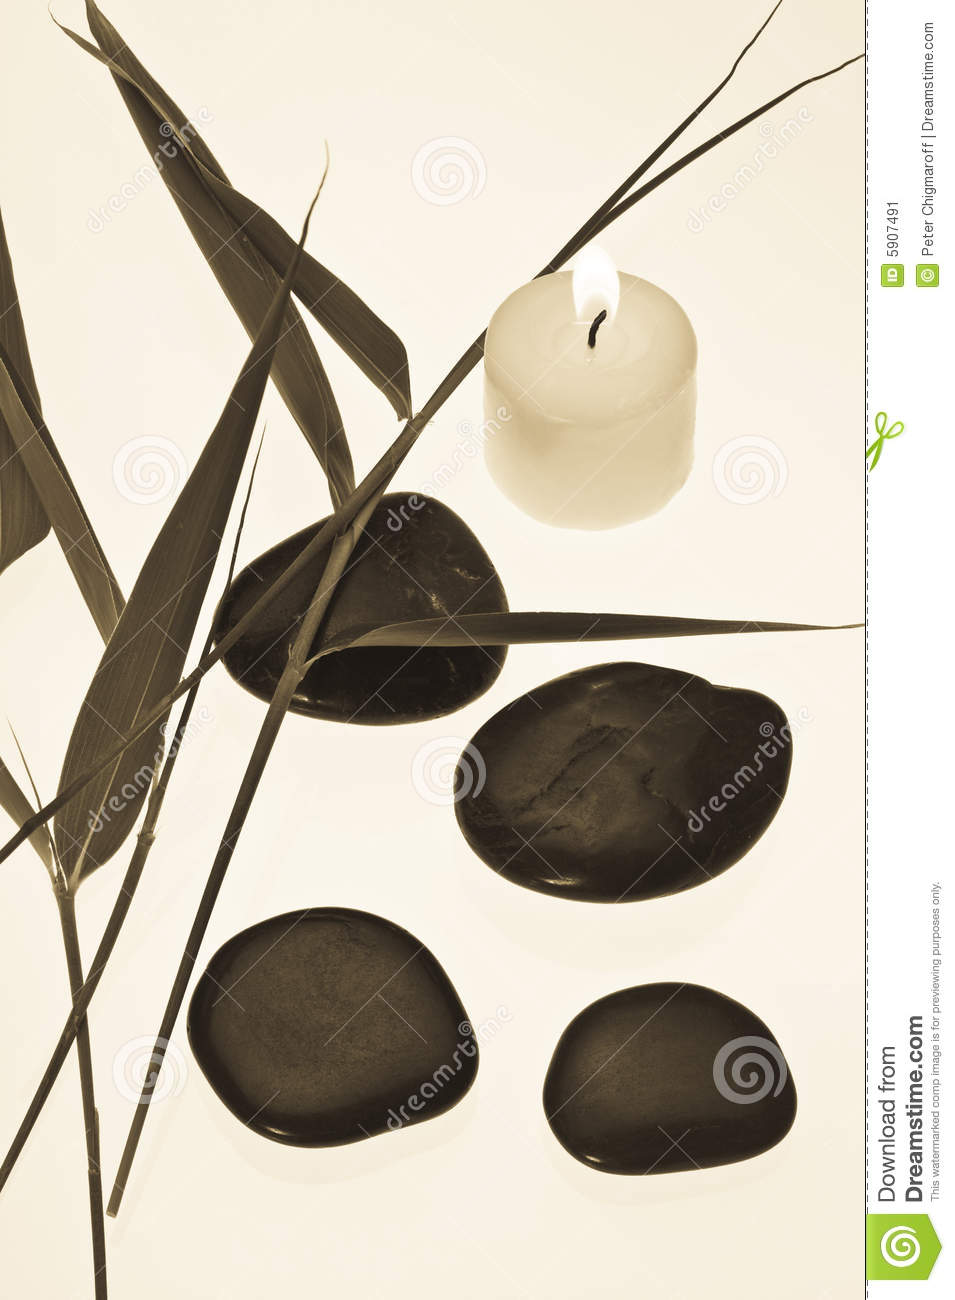 bamboo leaves candle and shiny black stone stock image